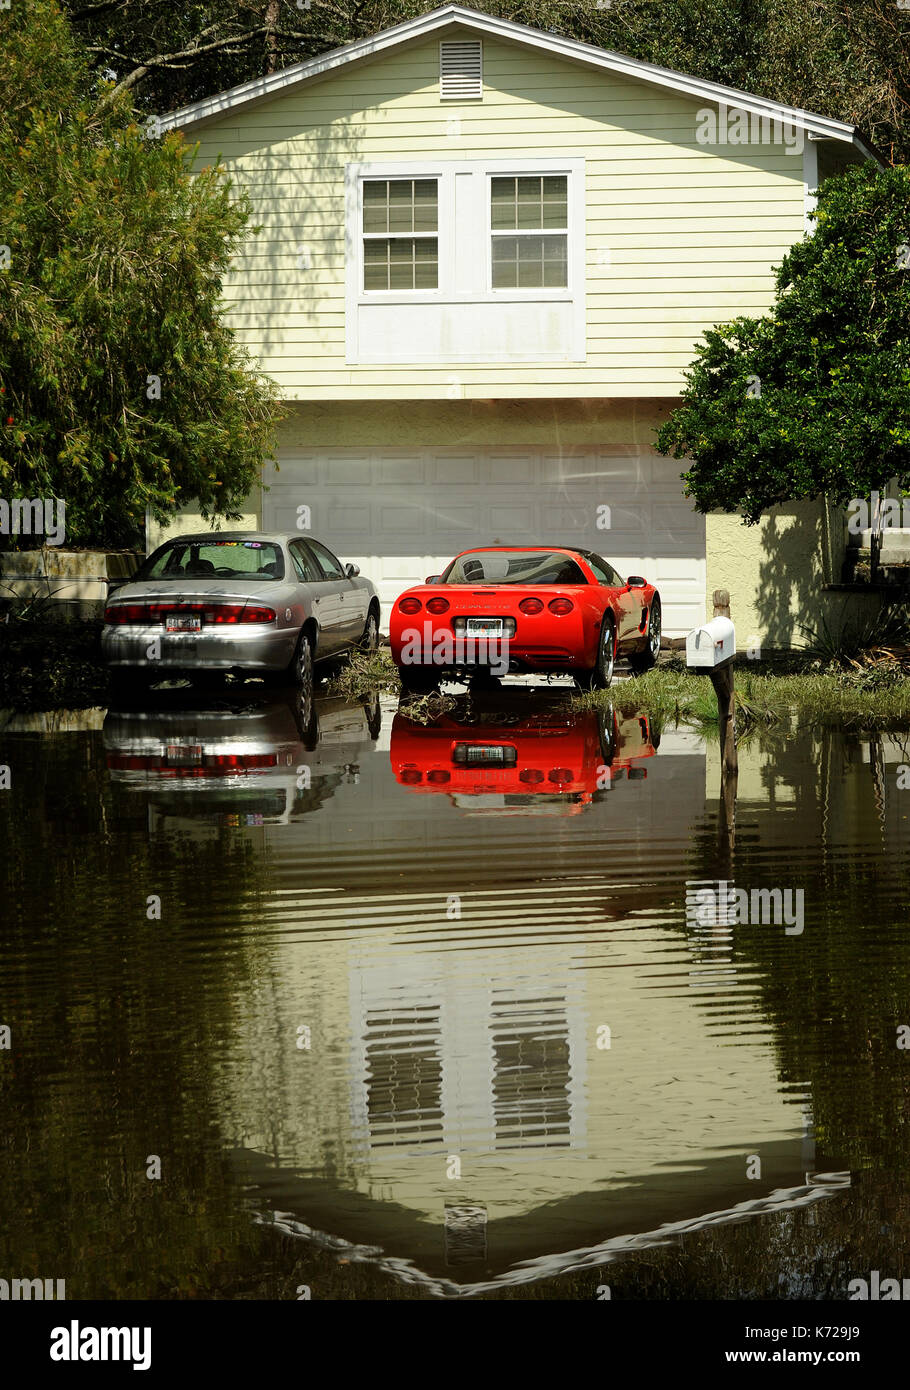 Altamonte Springs, United States. 14th Sep, 2017. September 14, 2017- Altamonte Springs, Florida, United States - A home and cars are seen reflected in flood waters in the street in the Spring Oaks neighborhood of Altamonte Springs, Florida on September 14, 2017. Emergency workers used boats and trucks to rescue more than 50 residents on September 11, 2017 when water from the nearby Little Wekiva River swamped their homes in the wake of Hurricane Irma. Credit: Paul Hennessy/Alamy Live News - Stock Image